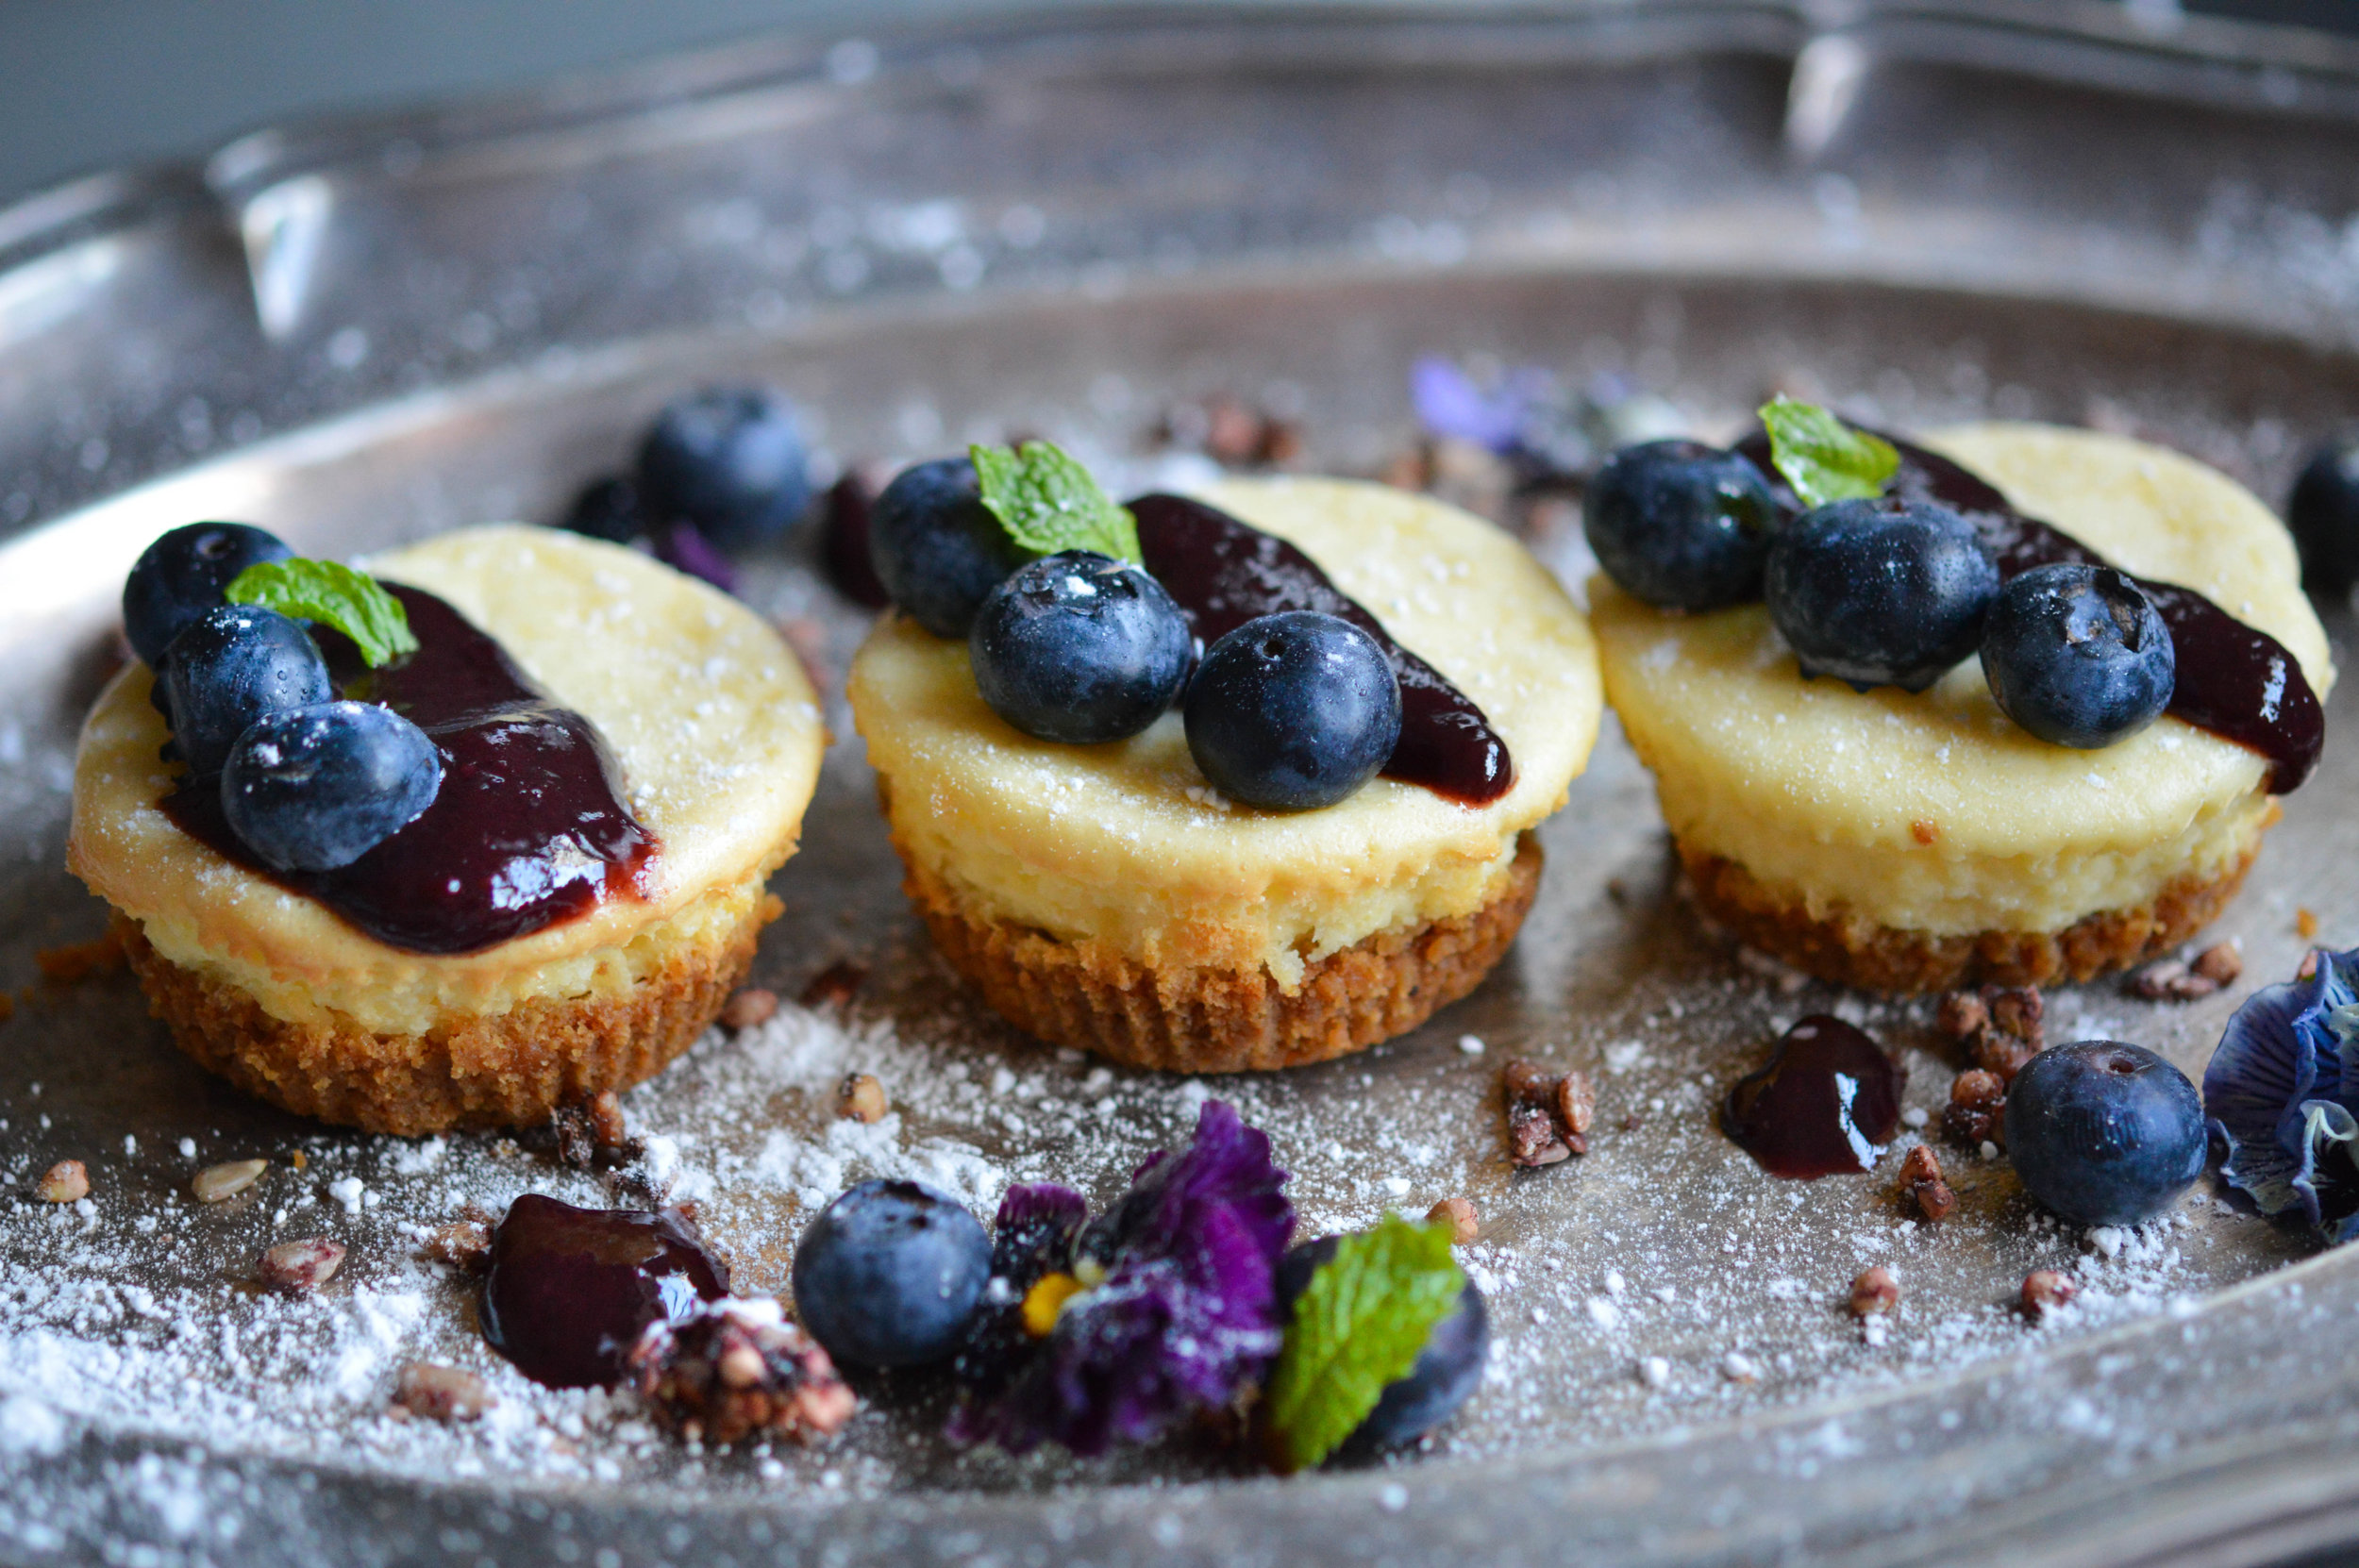 Small Cheesecakes with blueberries